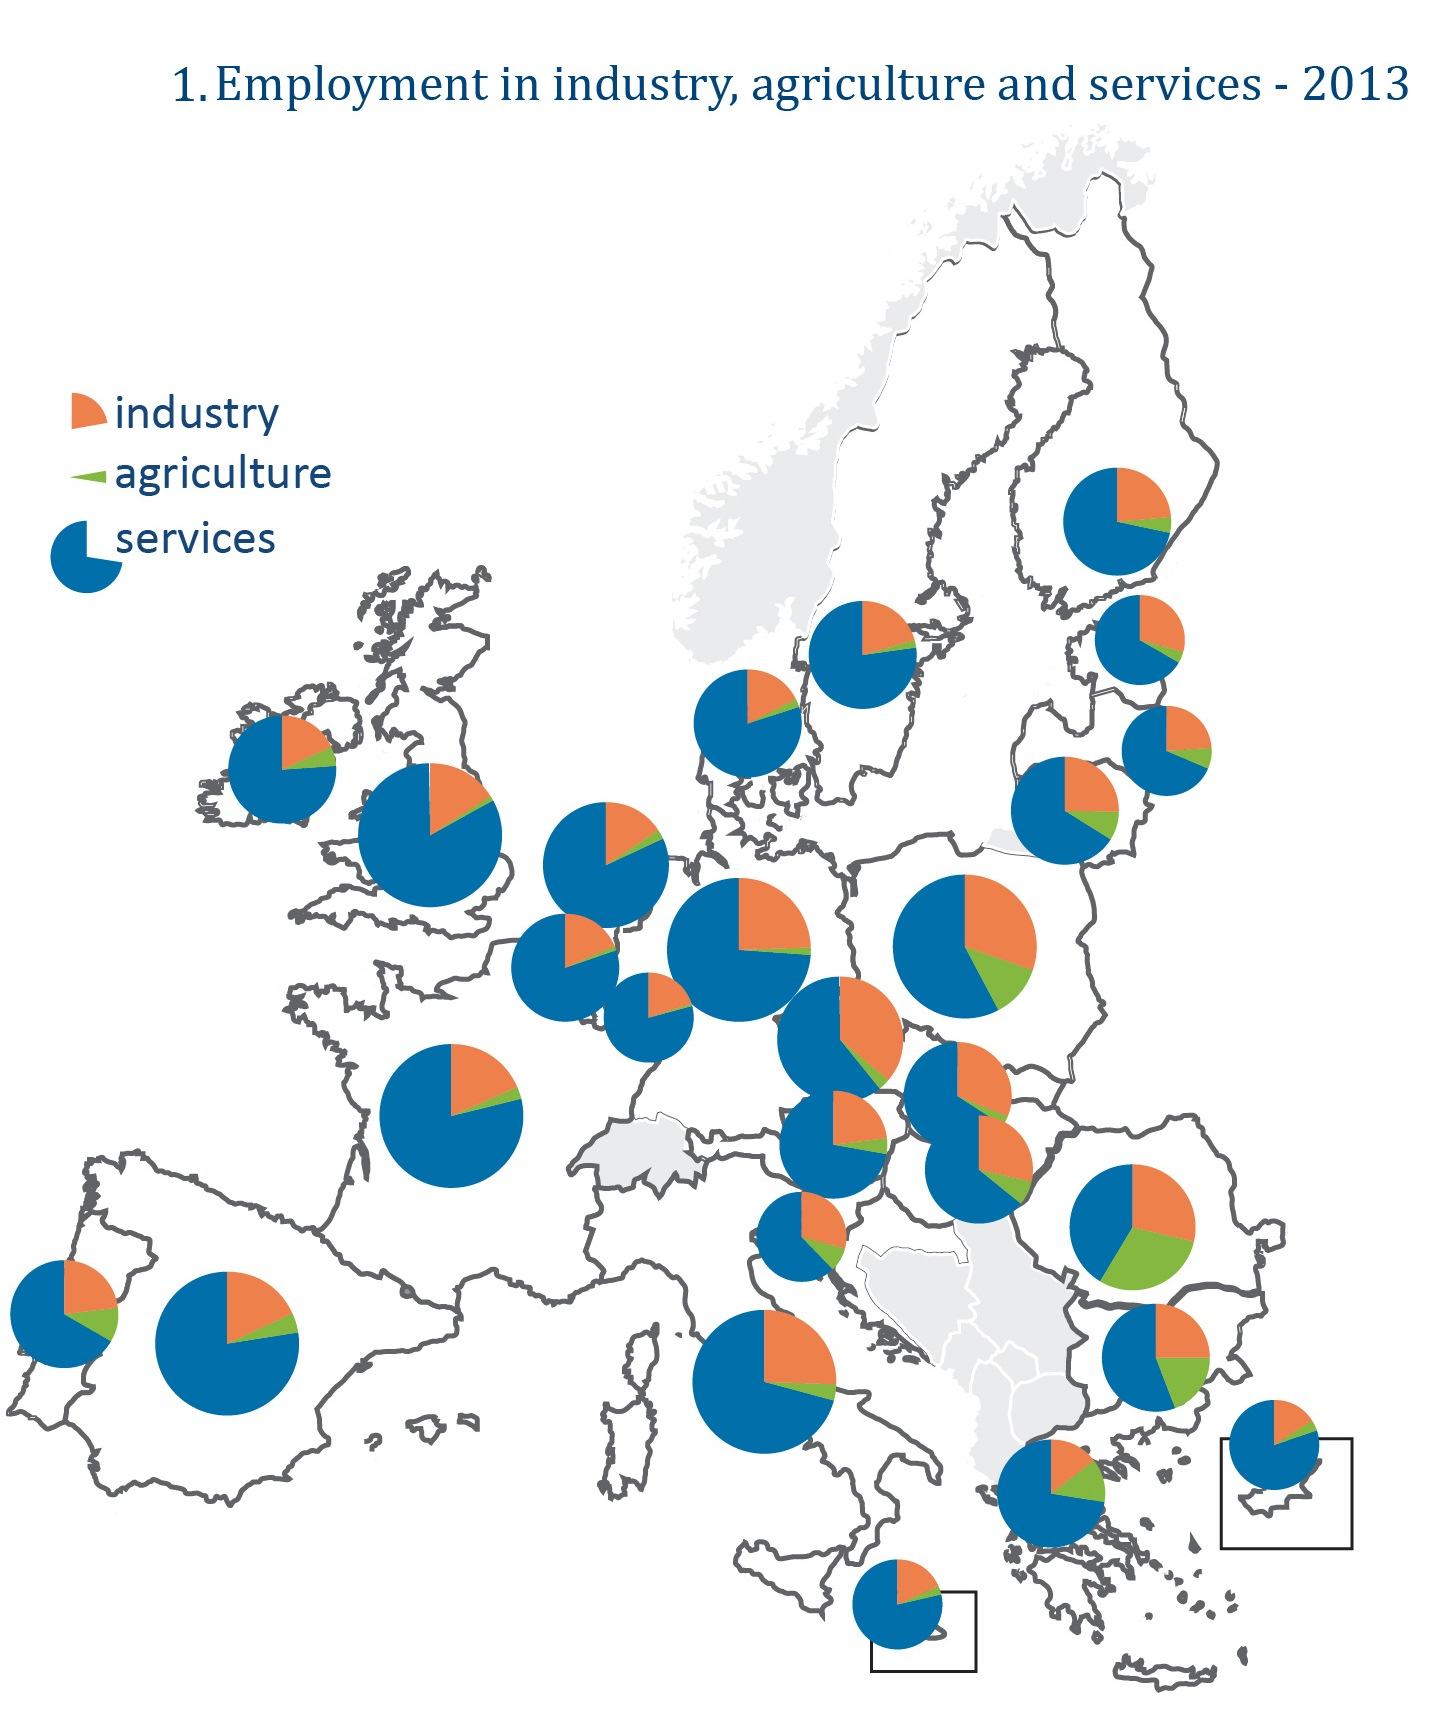 Employment in industry, agriculture and services - 2013